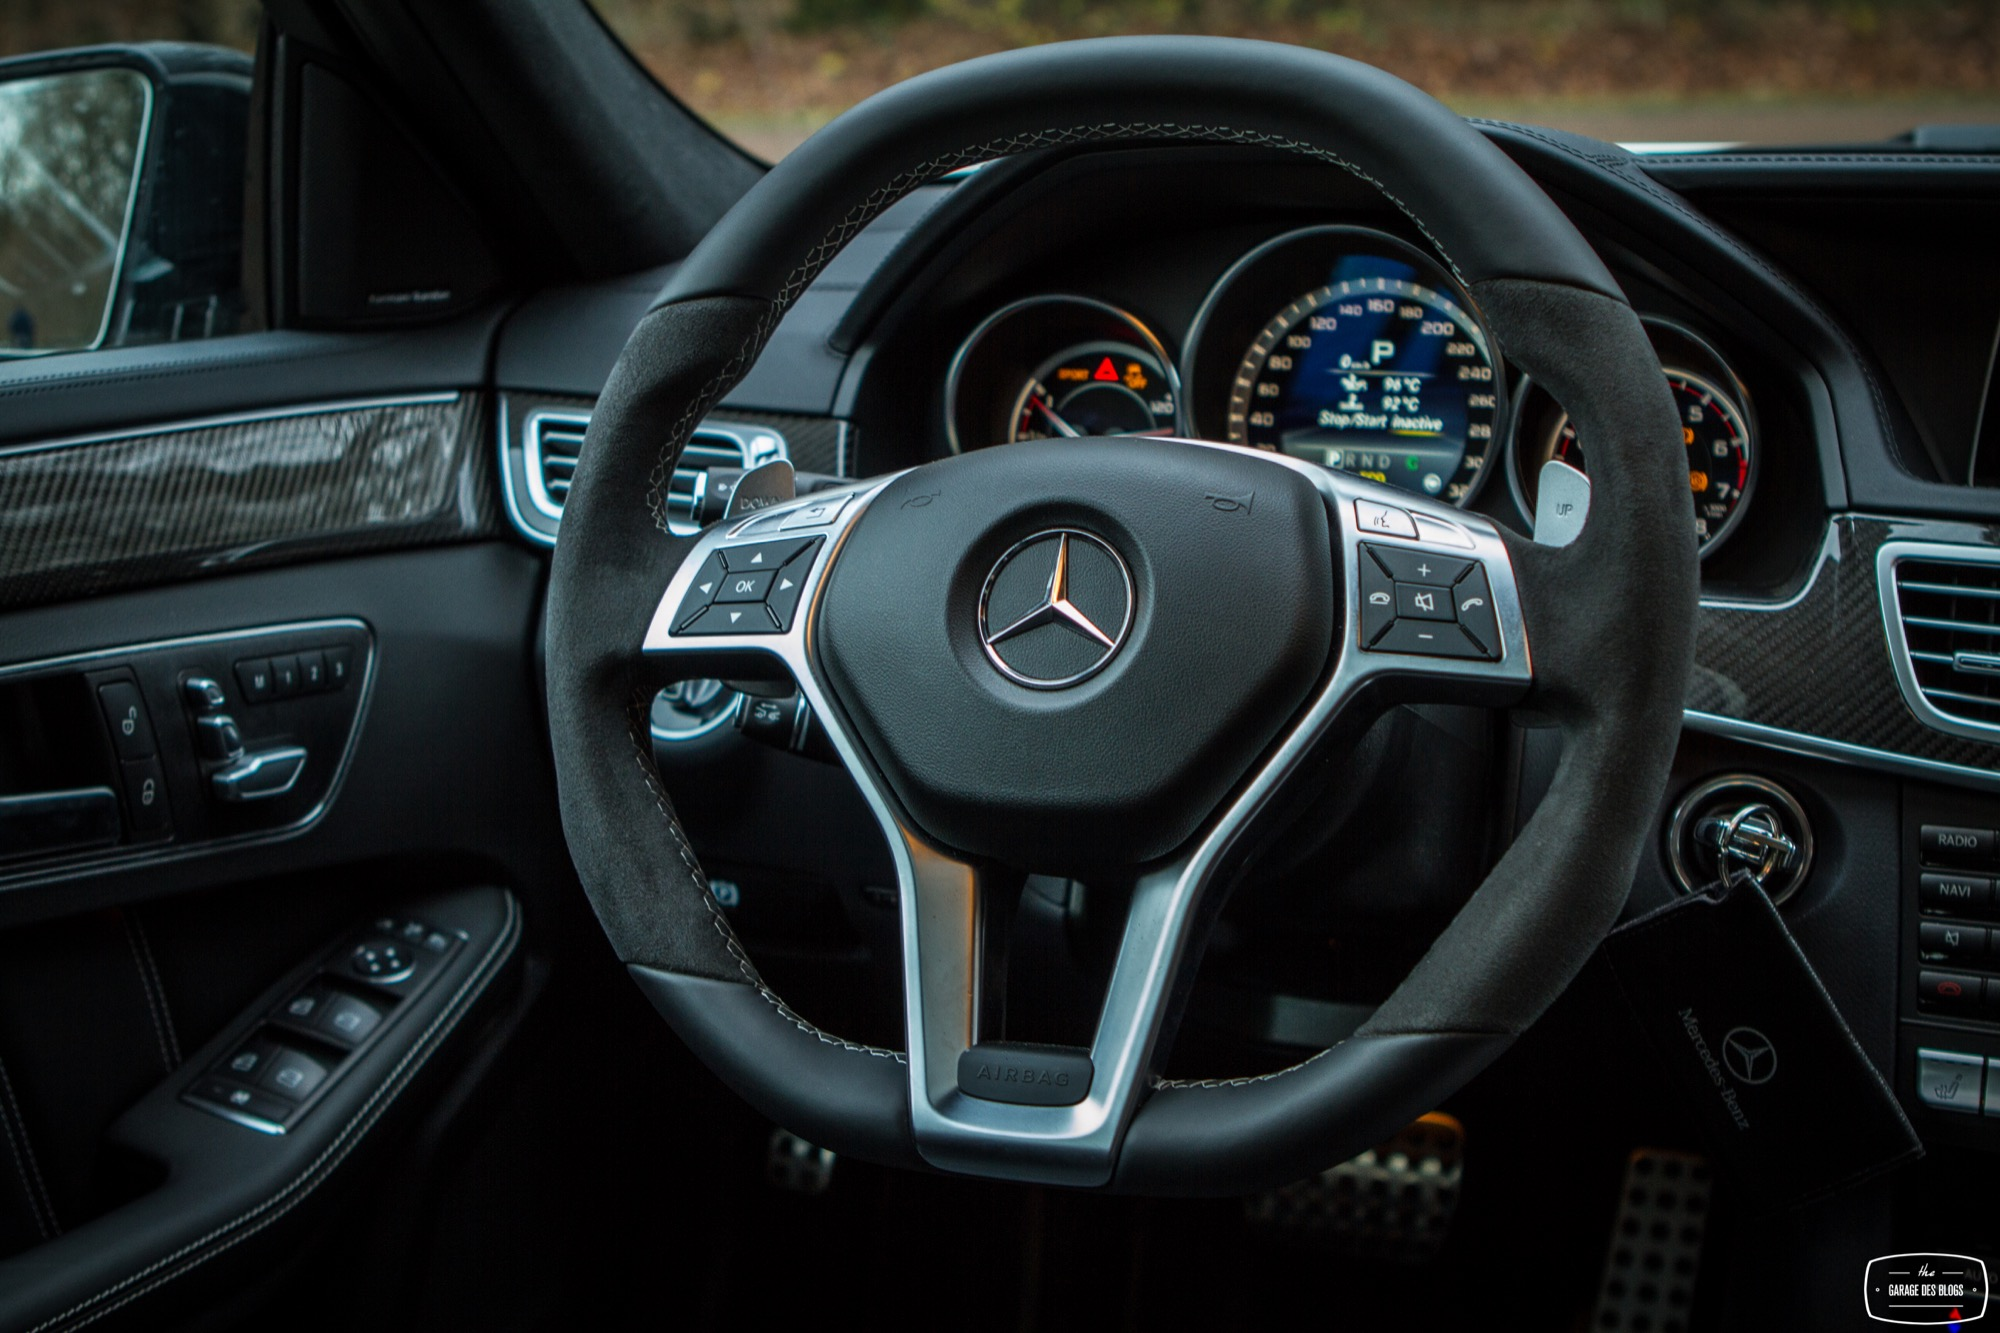 La mercedes benz e 63 amg s 4matic break l 39 essai for Mercedes e interieur